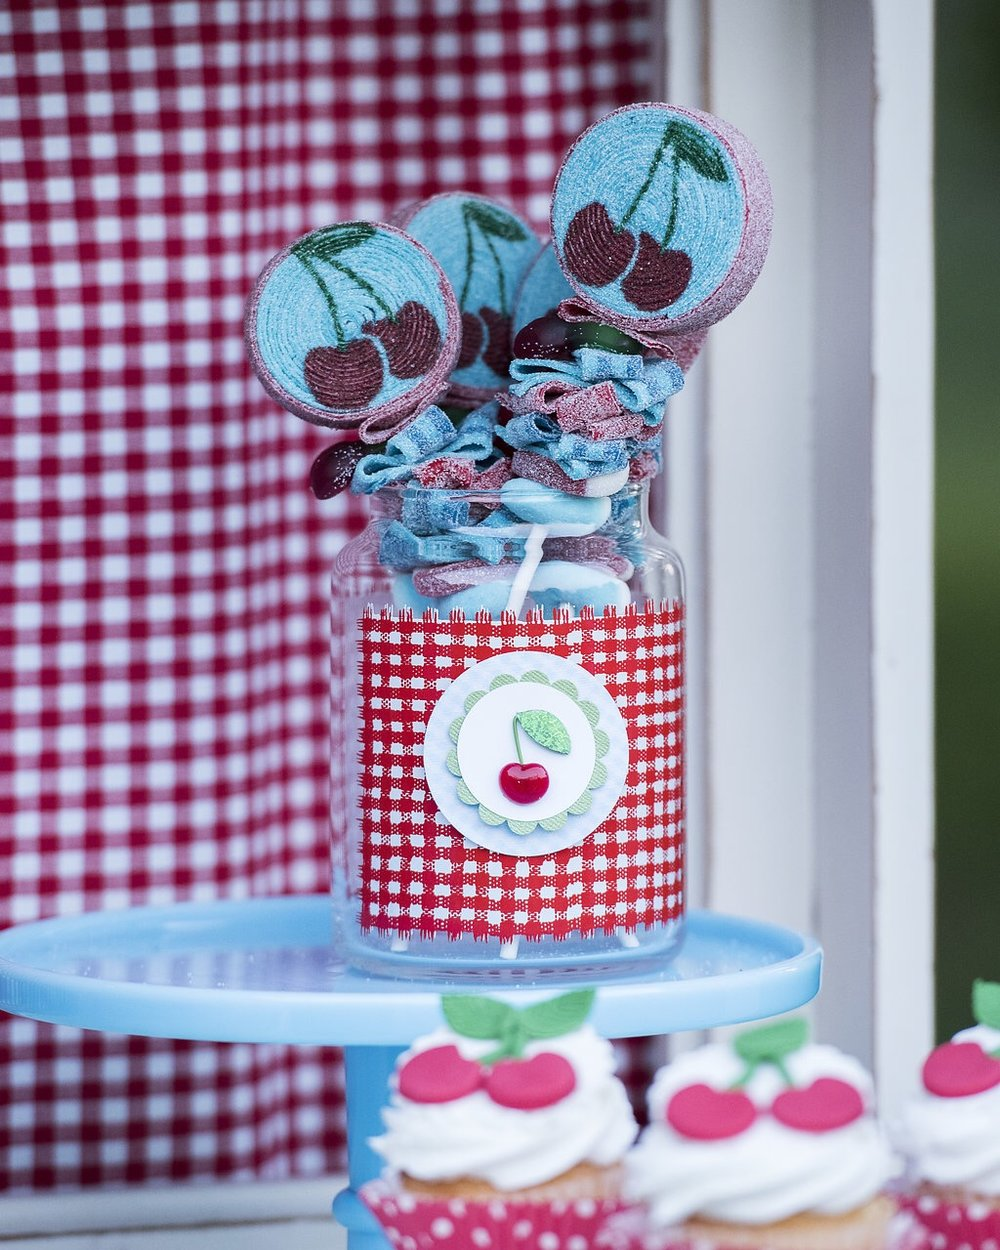 This cherry birthday party is so over the top and adorable! Loving these cherry candy kabobs by Sweets Indeed. As seen on Mint Event Design in Austin Texas www.minteventdesign.com #summerparties #partyideas #kidspartyideas #partyplanning #birthdaypartyideas #kidsparty #cherryparty